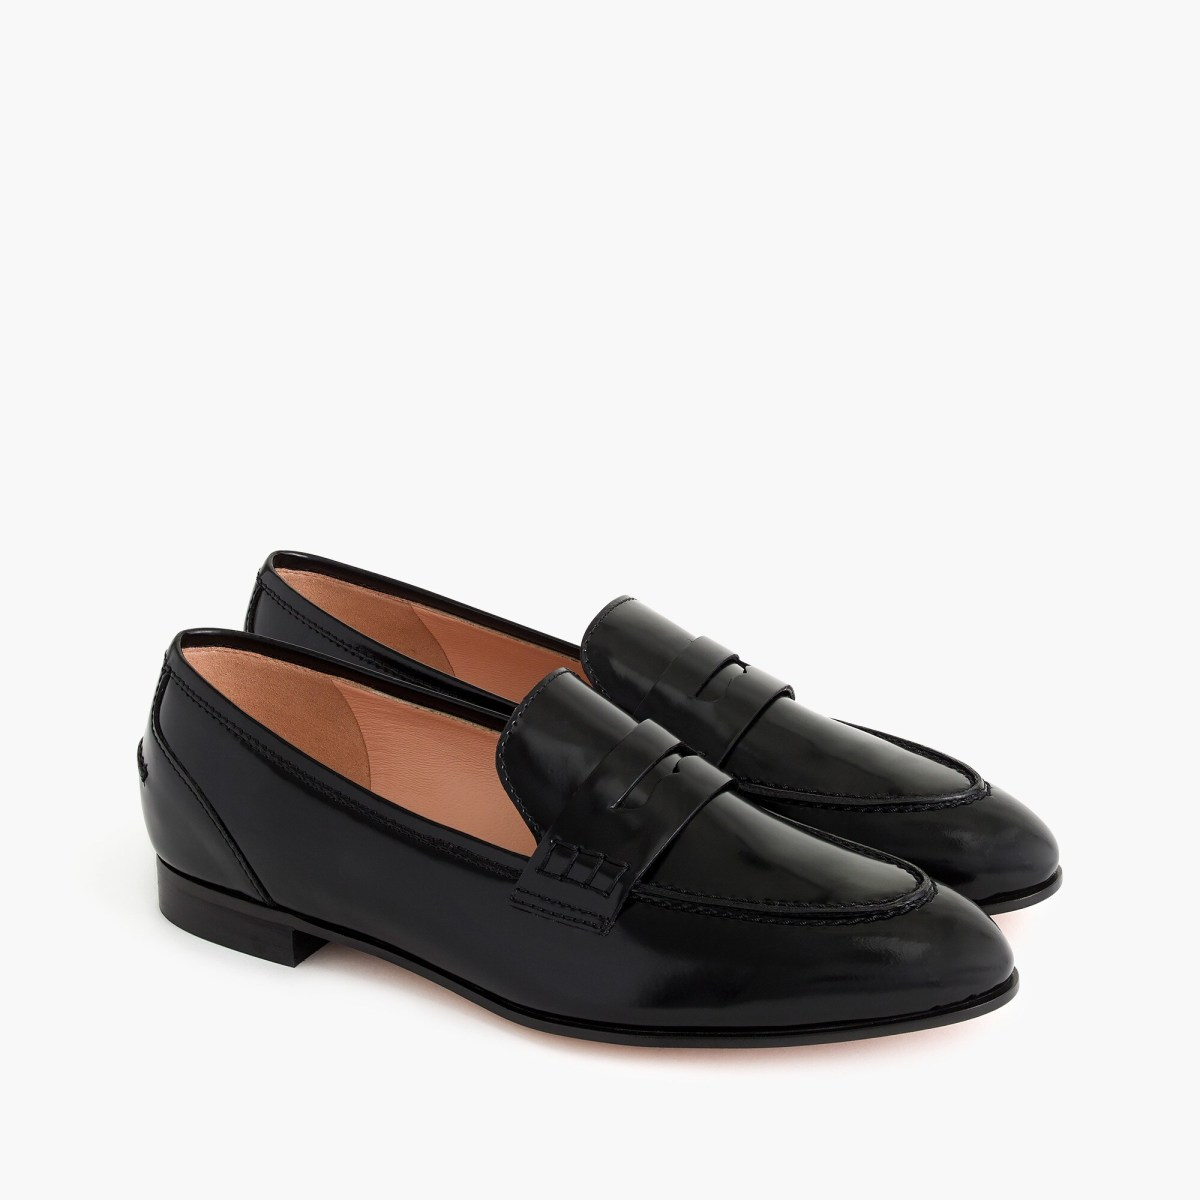 J.Crew Academy Penny Loafers, $178, available here.